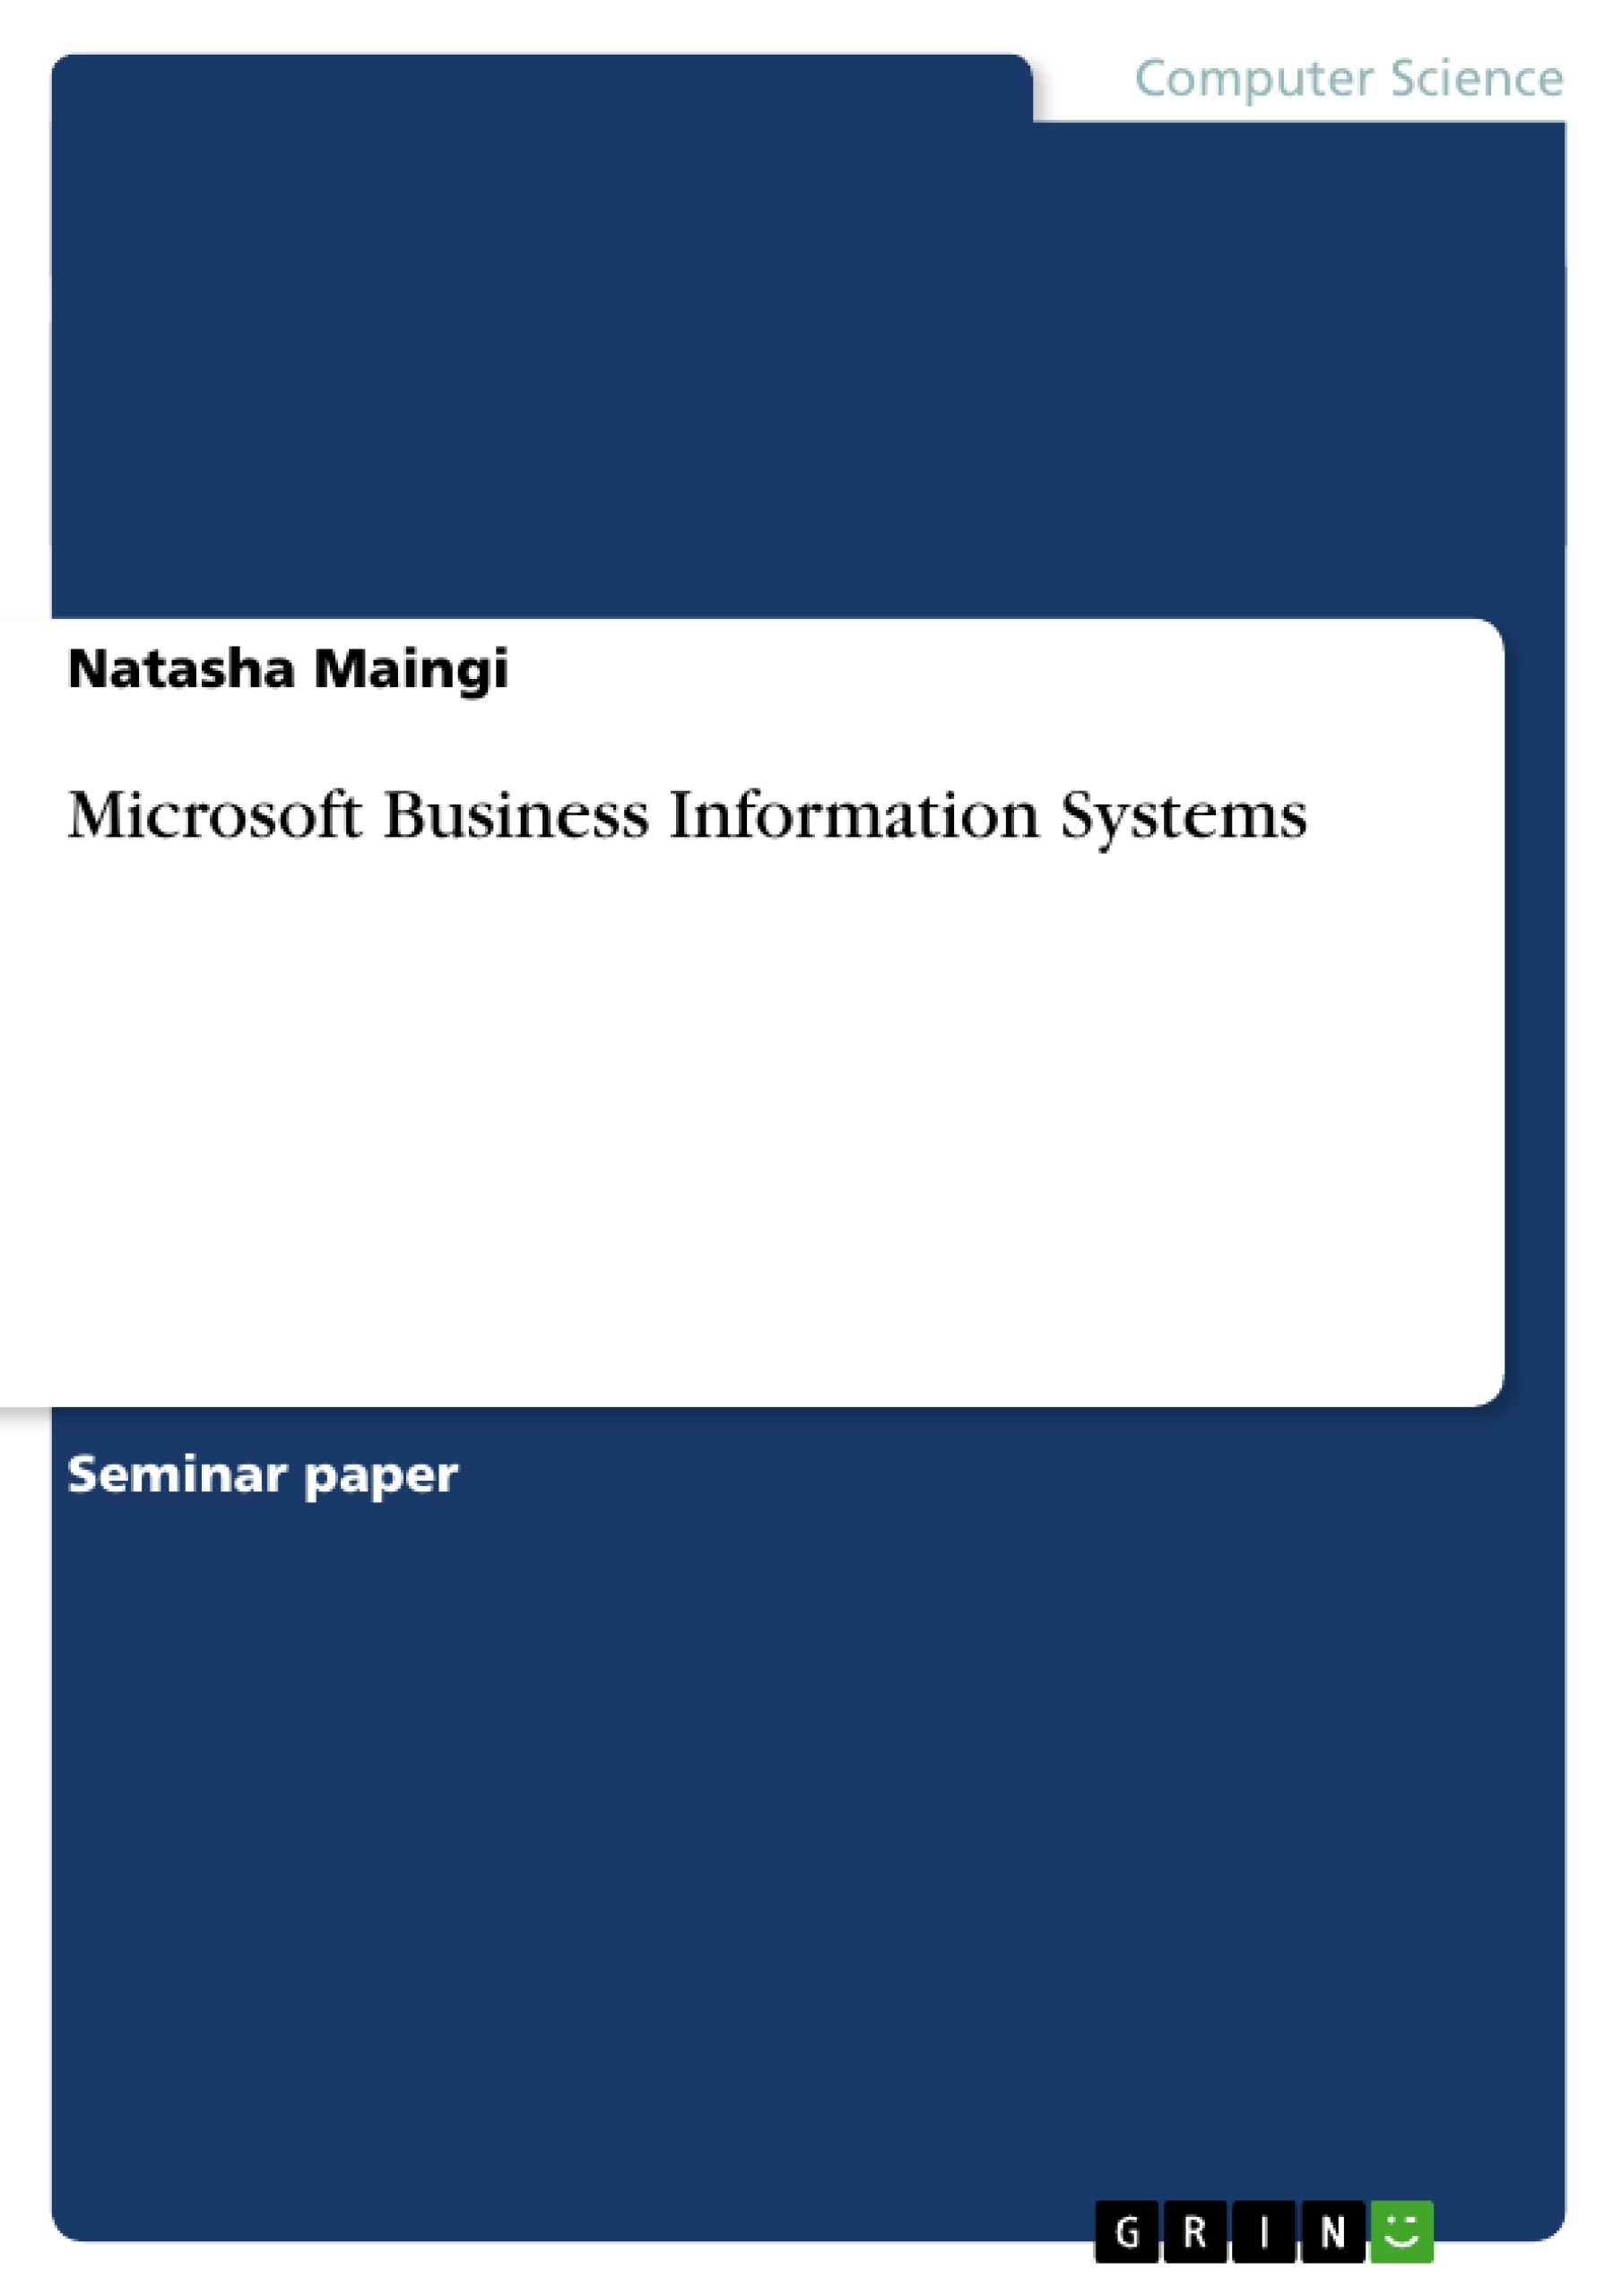 GRIN - Microsoft Business Information Systems